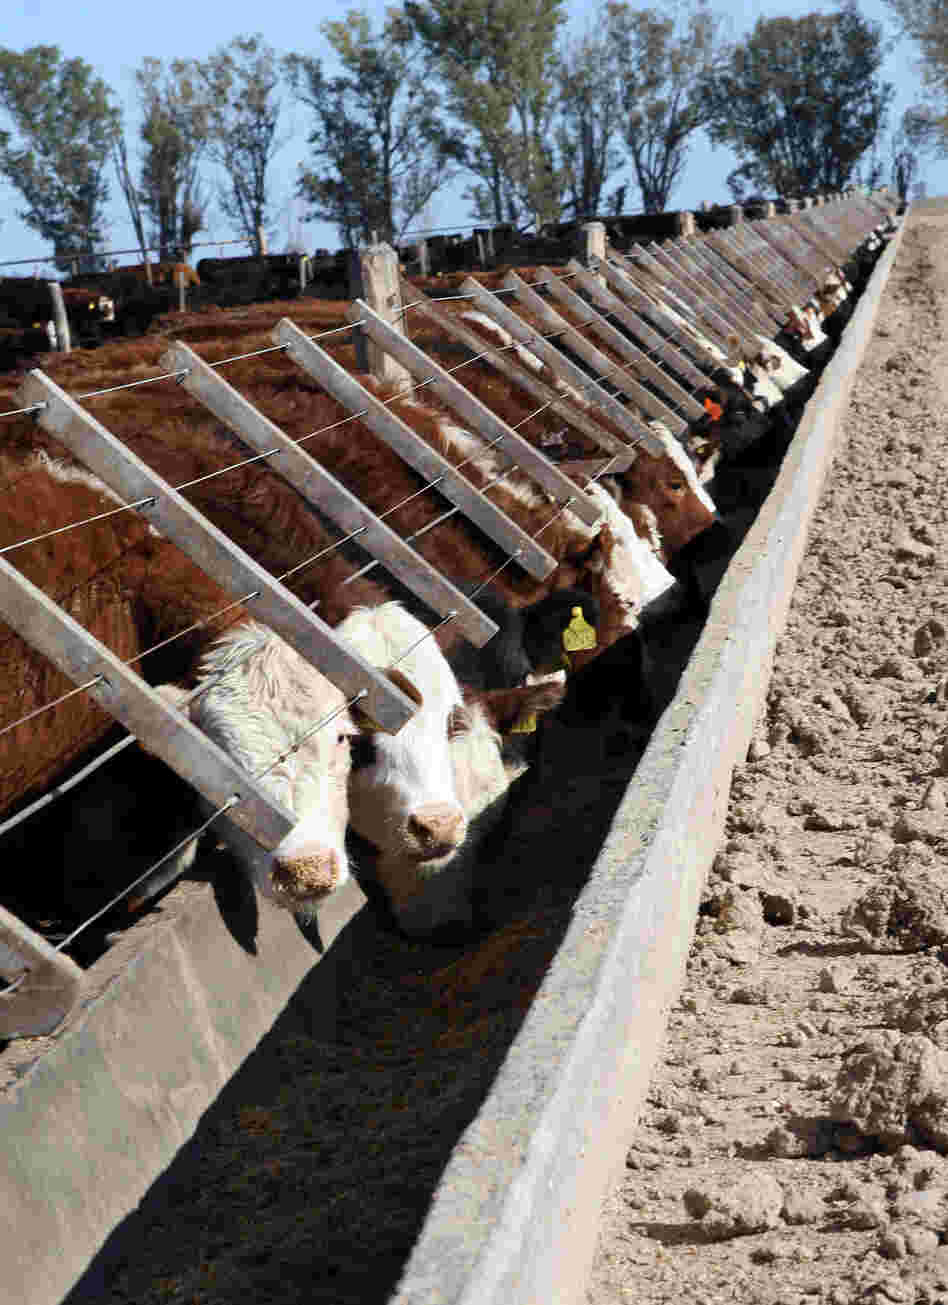 CUSTOM: Cattle at Santa Maria feedlot in Magdalena, Argentina